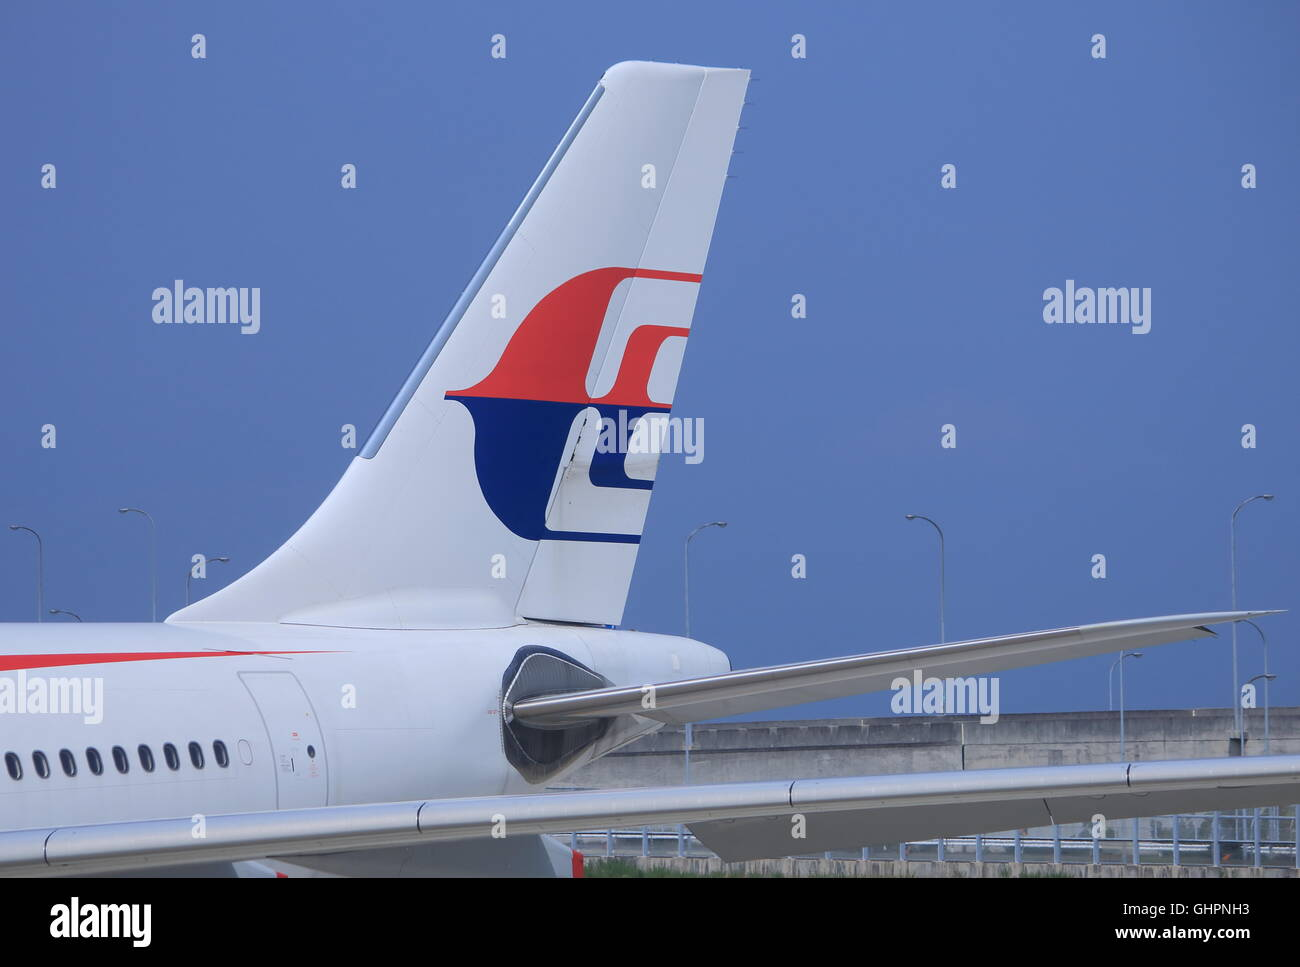 malaysian airlines airplane the flag carrier airline of malaysia